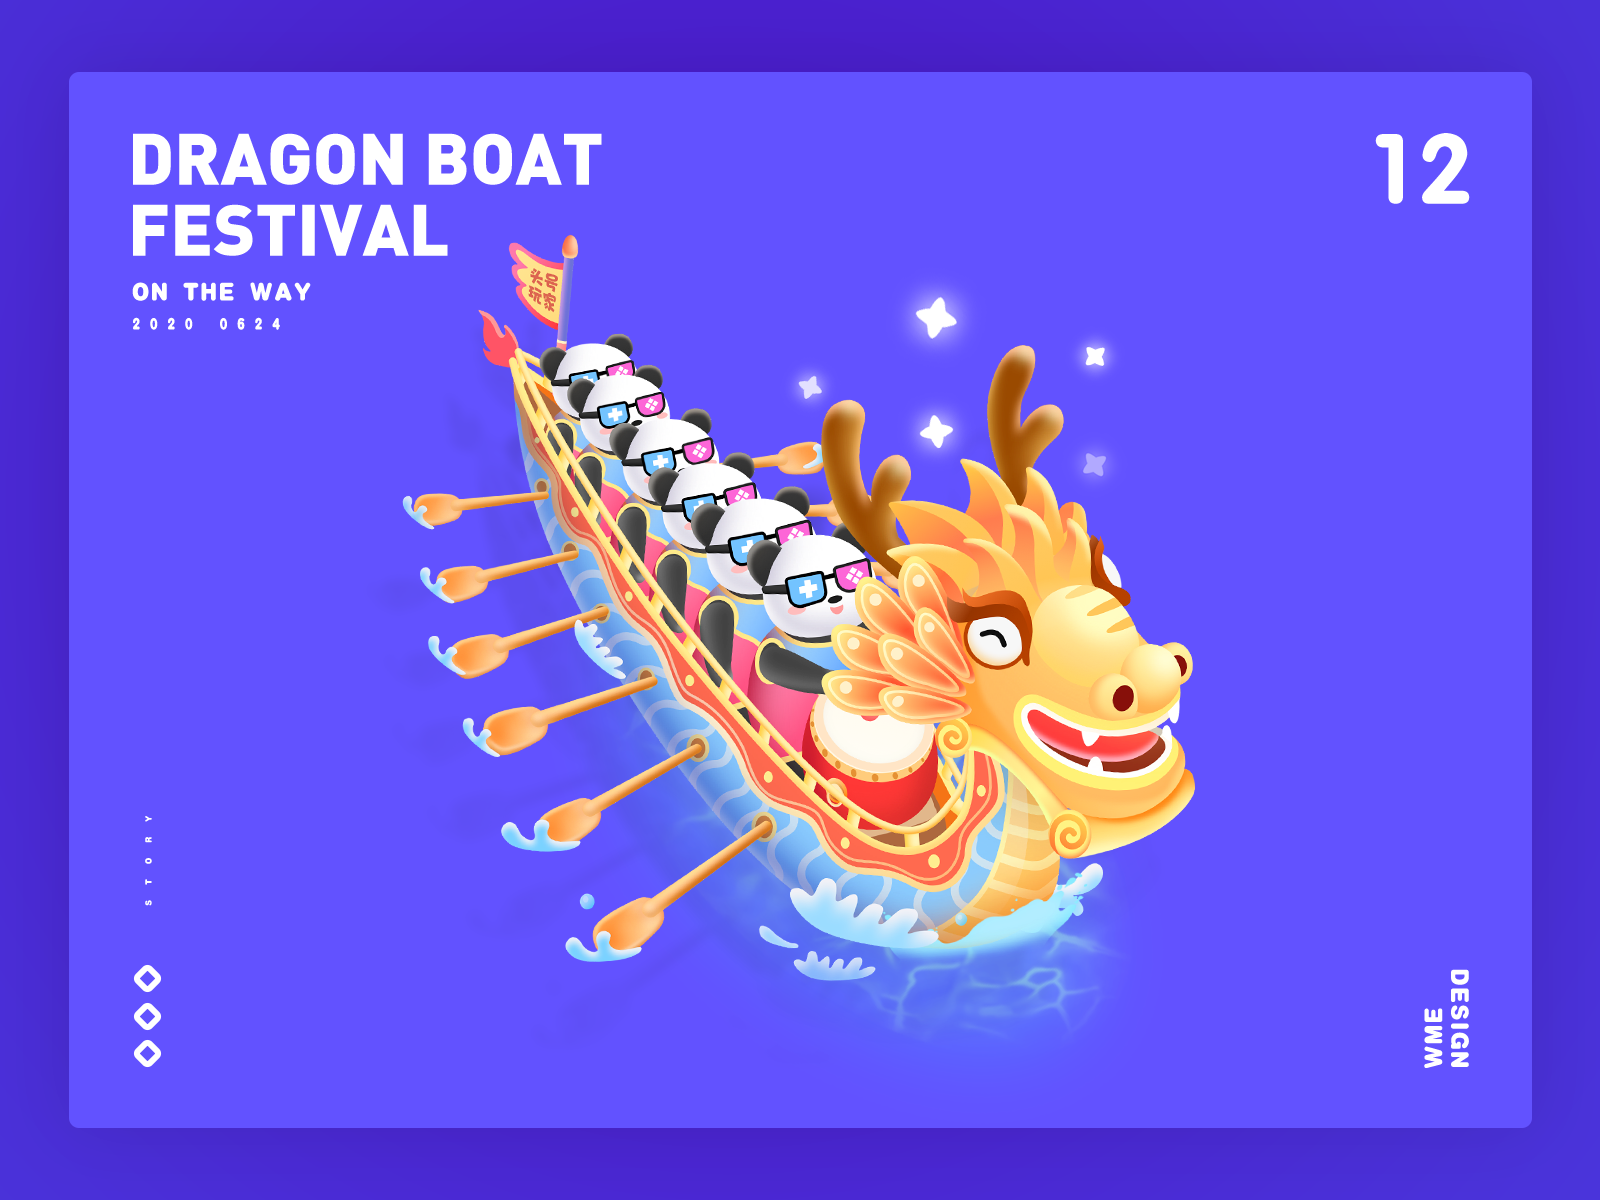 Dragon Boat Festival Happy Live Gift By Wme For Red On Dribbble In 2020 Dragon Boat Festival Dragon Boat Live Gifts